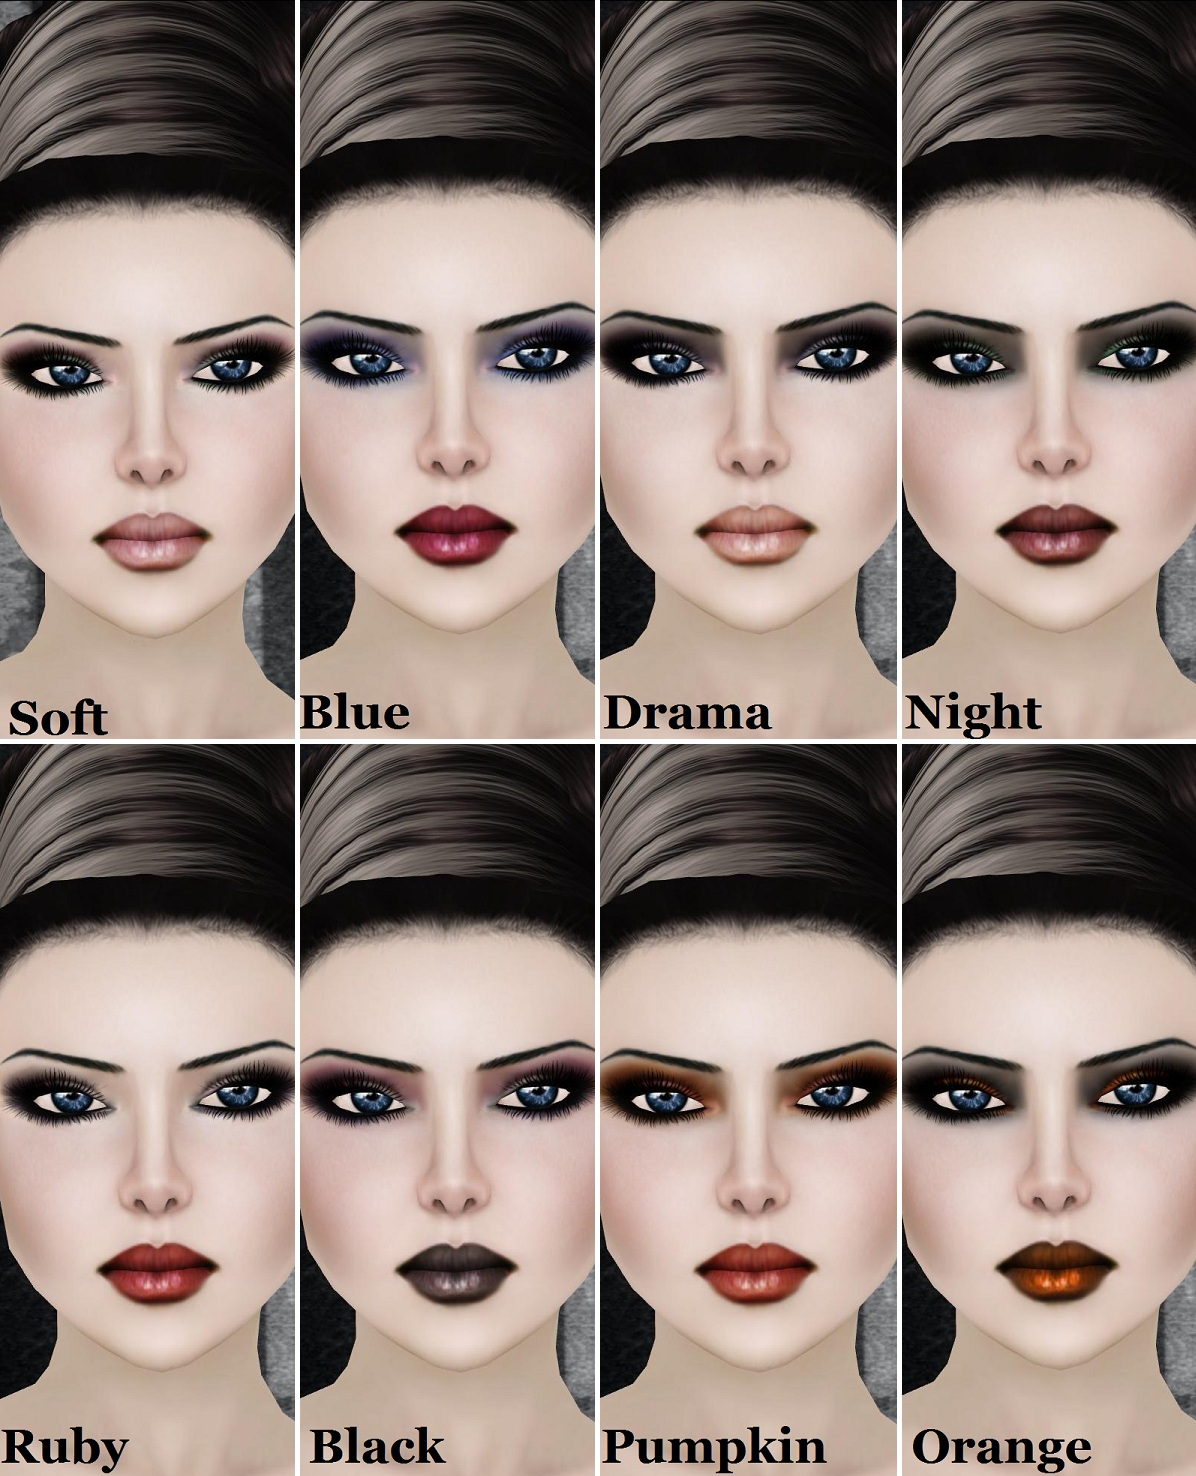 1000 ideas about pastel goth makeup on pinterest nu goth makeup -  Pastel Goth Goth Makeup Tutorial For Mugeek Vidalondon Gothic Sultry Makeup Ideas